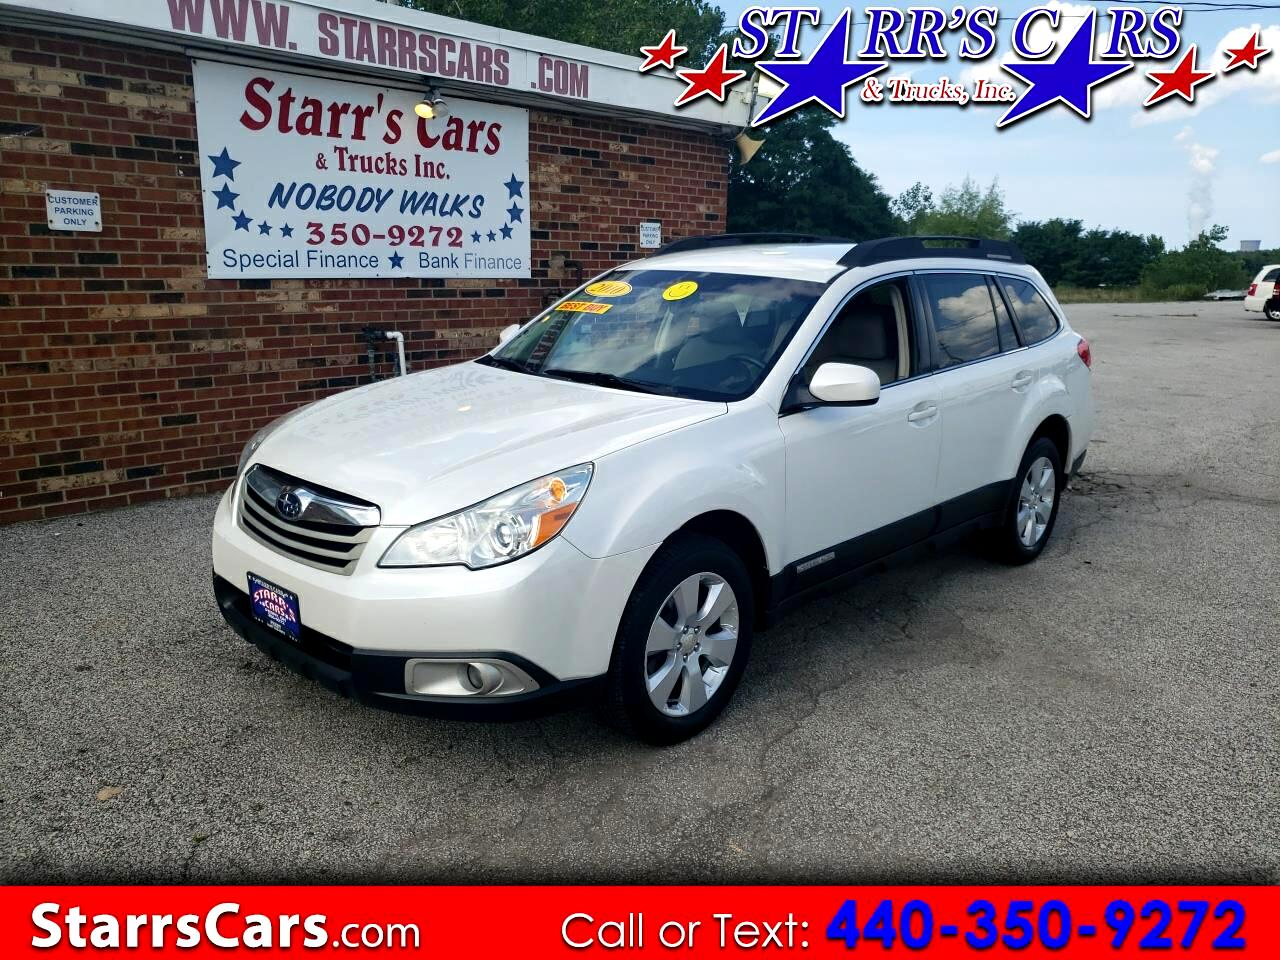 Subaru Outback 4dr Wgn H4 Auto 2.5i Premium All-Weather 2010